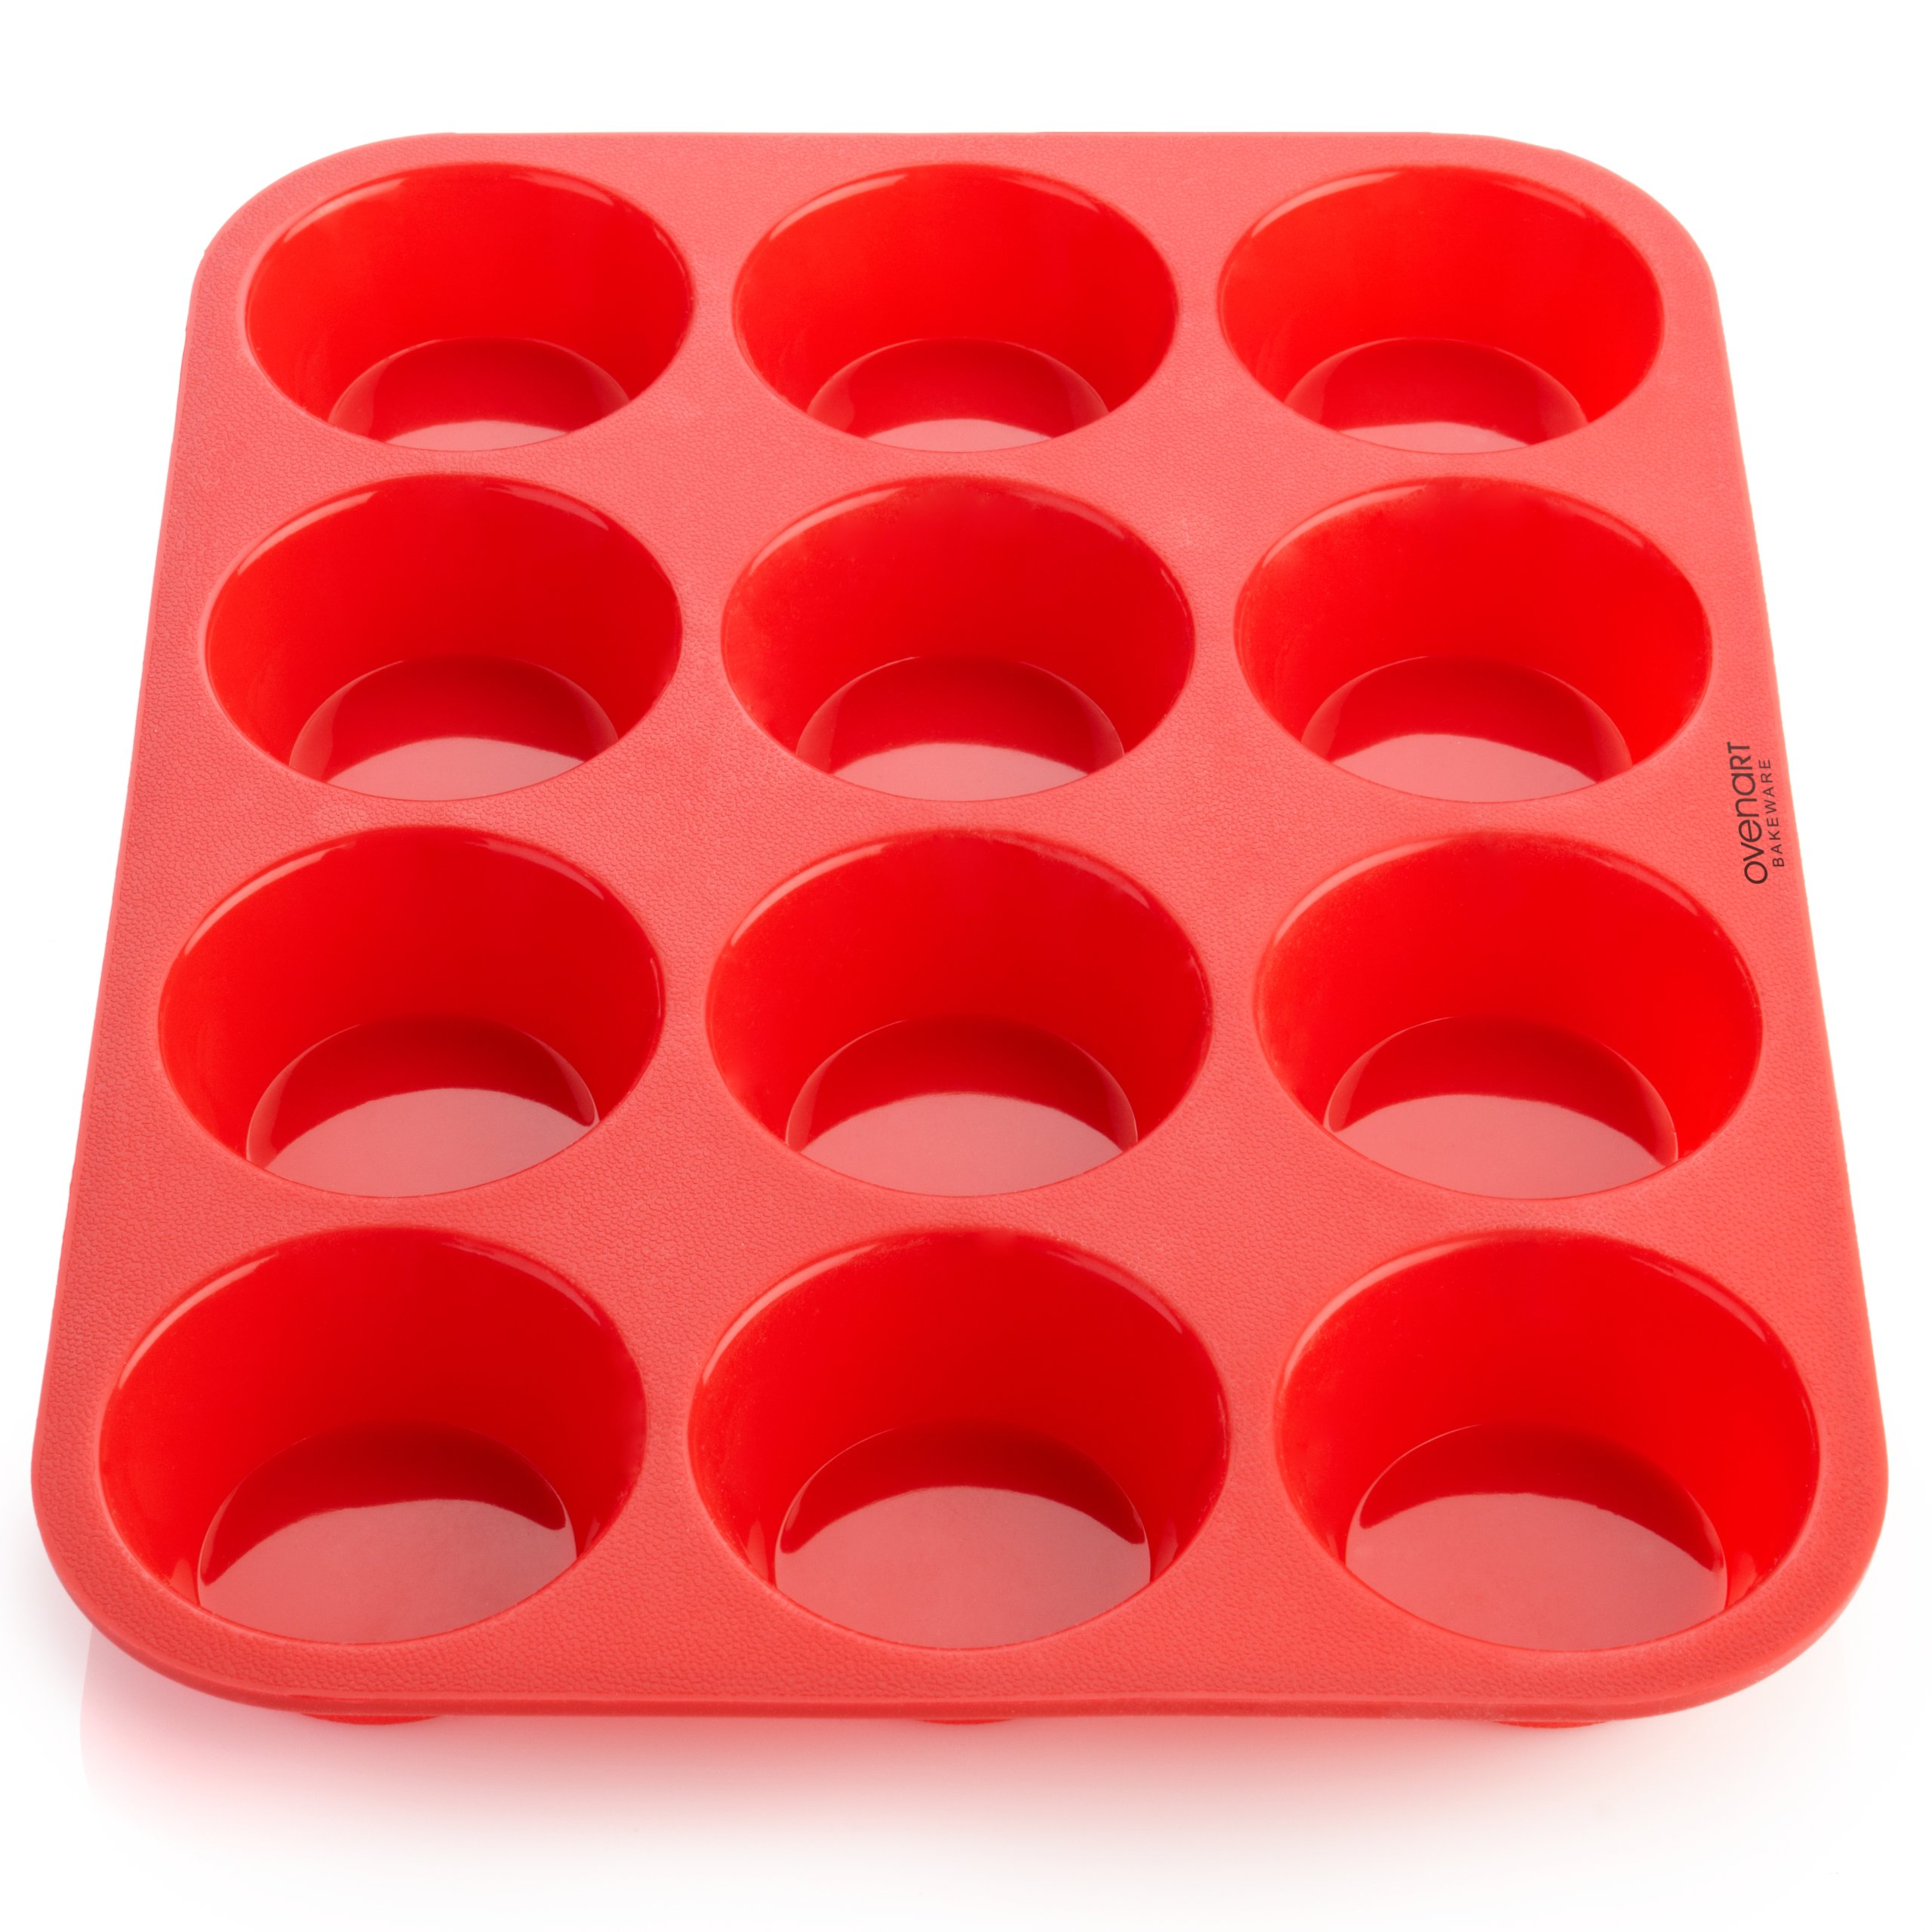 OvenArt Bakeware OV-SB50-01 Silicone Muffin Pan, 12.8'' x 9.7'' x 1.2'', Red by OvenArt Bakeware (Image #1)